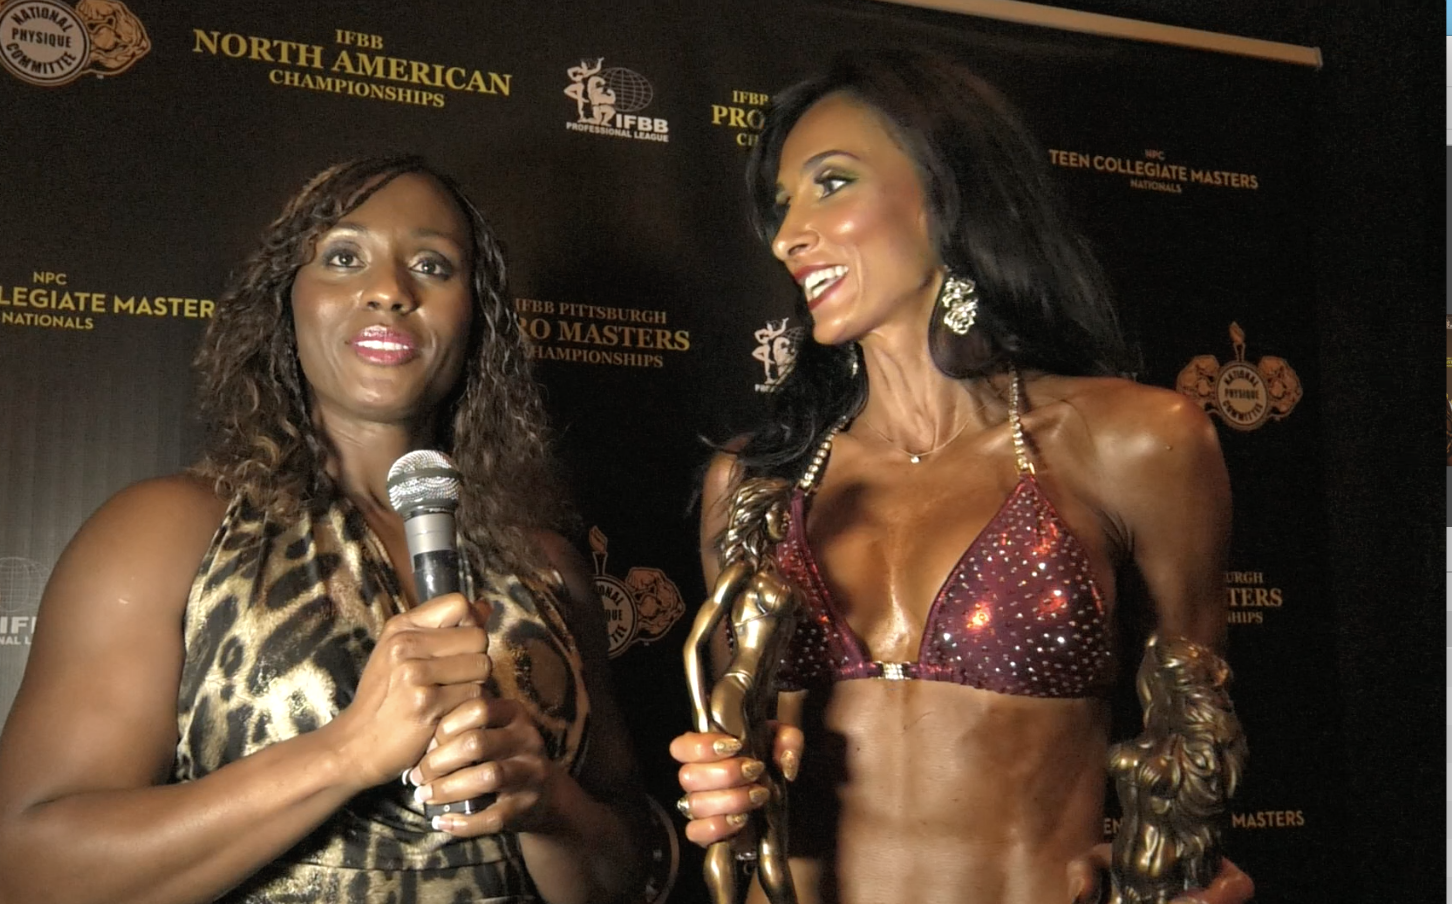 2017 NPC Teen, Collegiate & Masters Nationals Bikini Overall Winners: 6 Videos